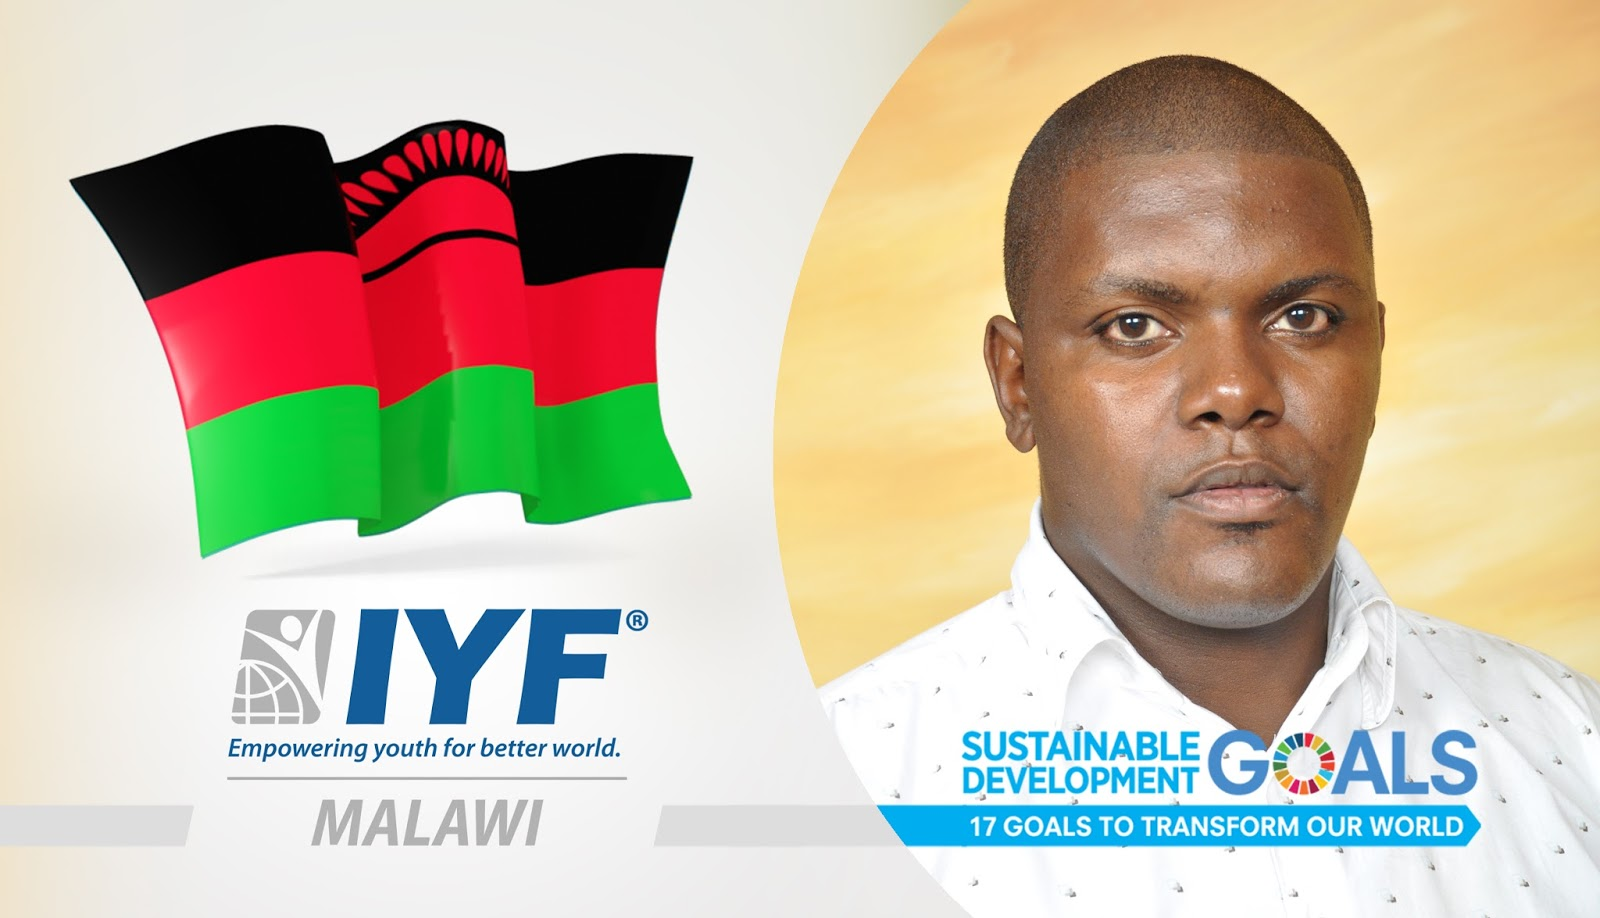 Philip GAMA IYF Representative in Malawi